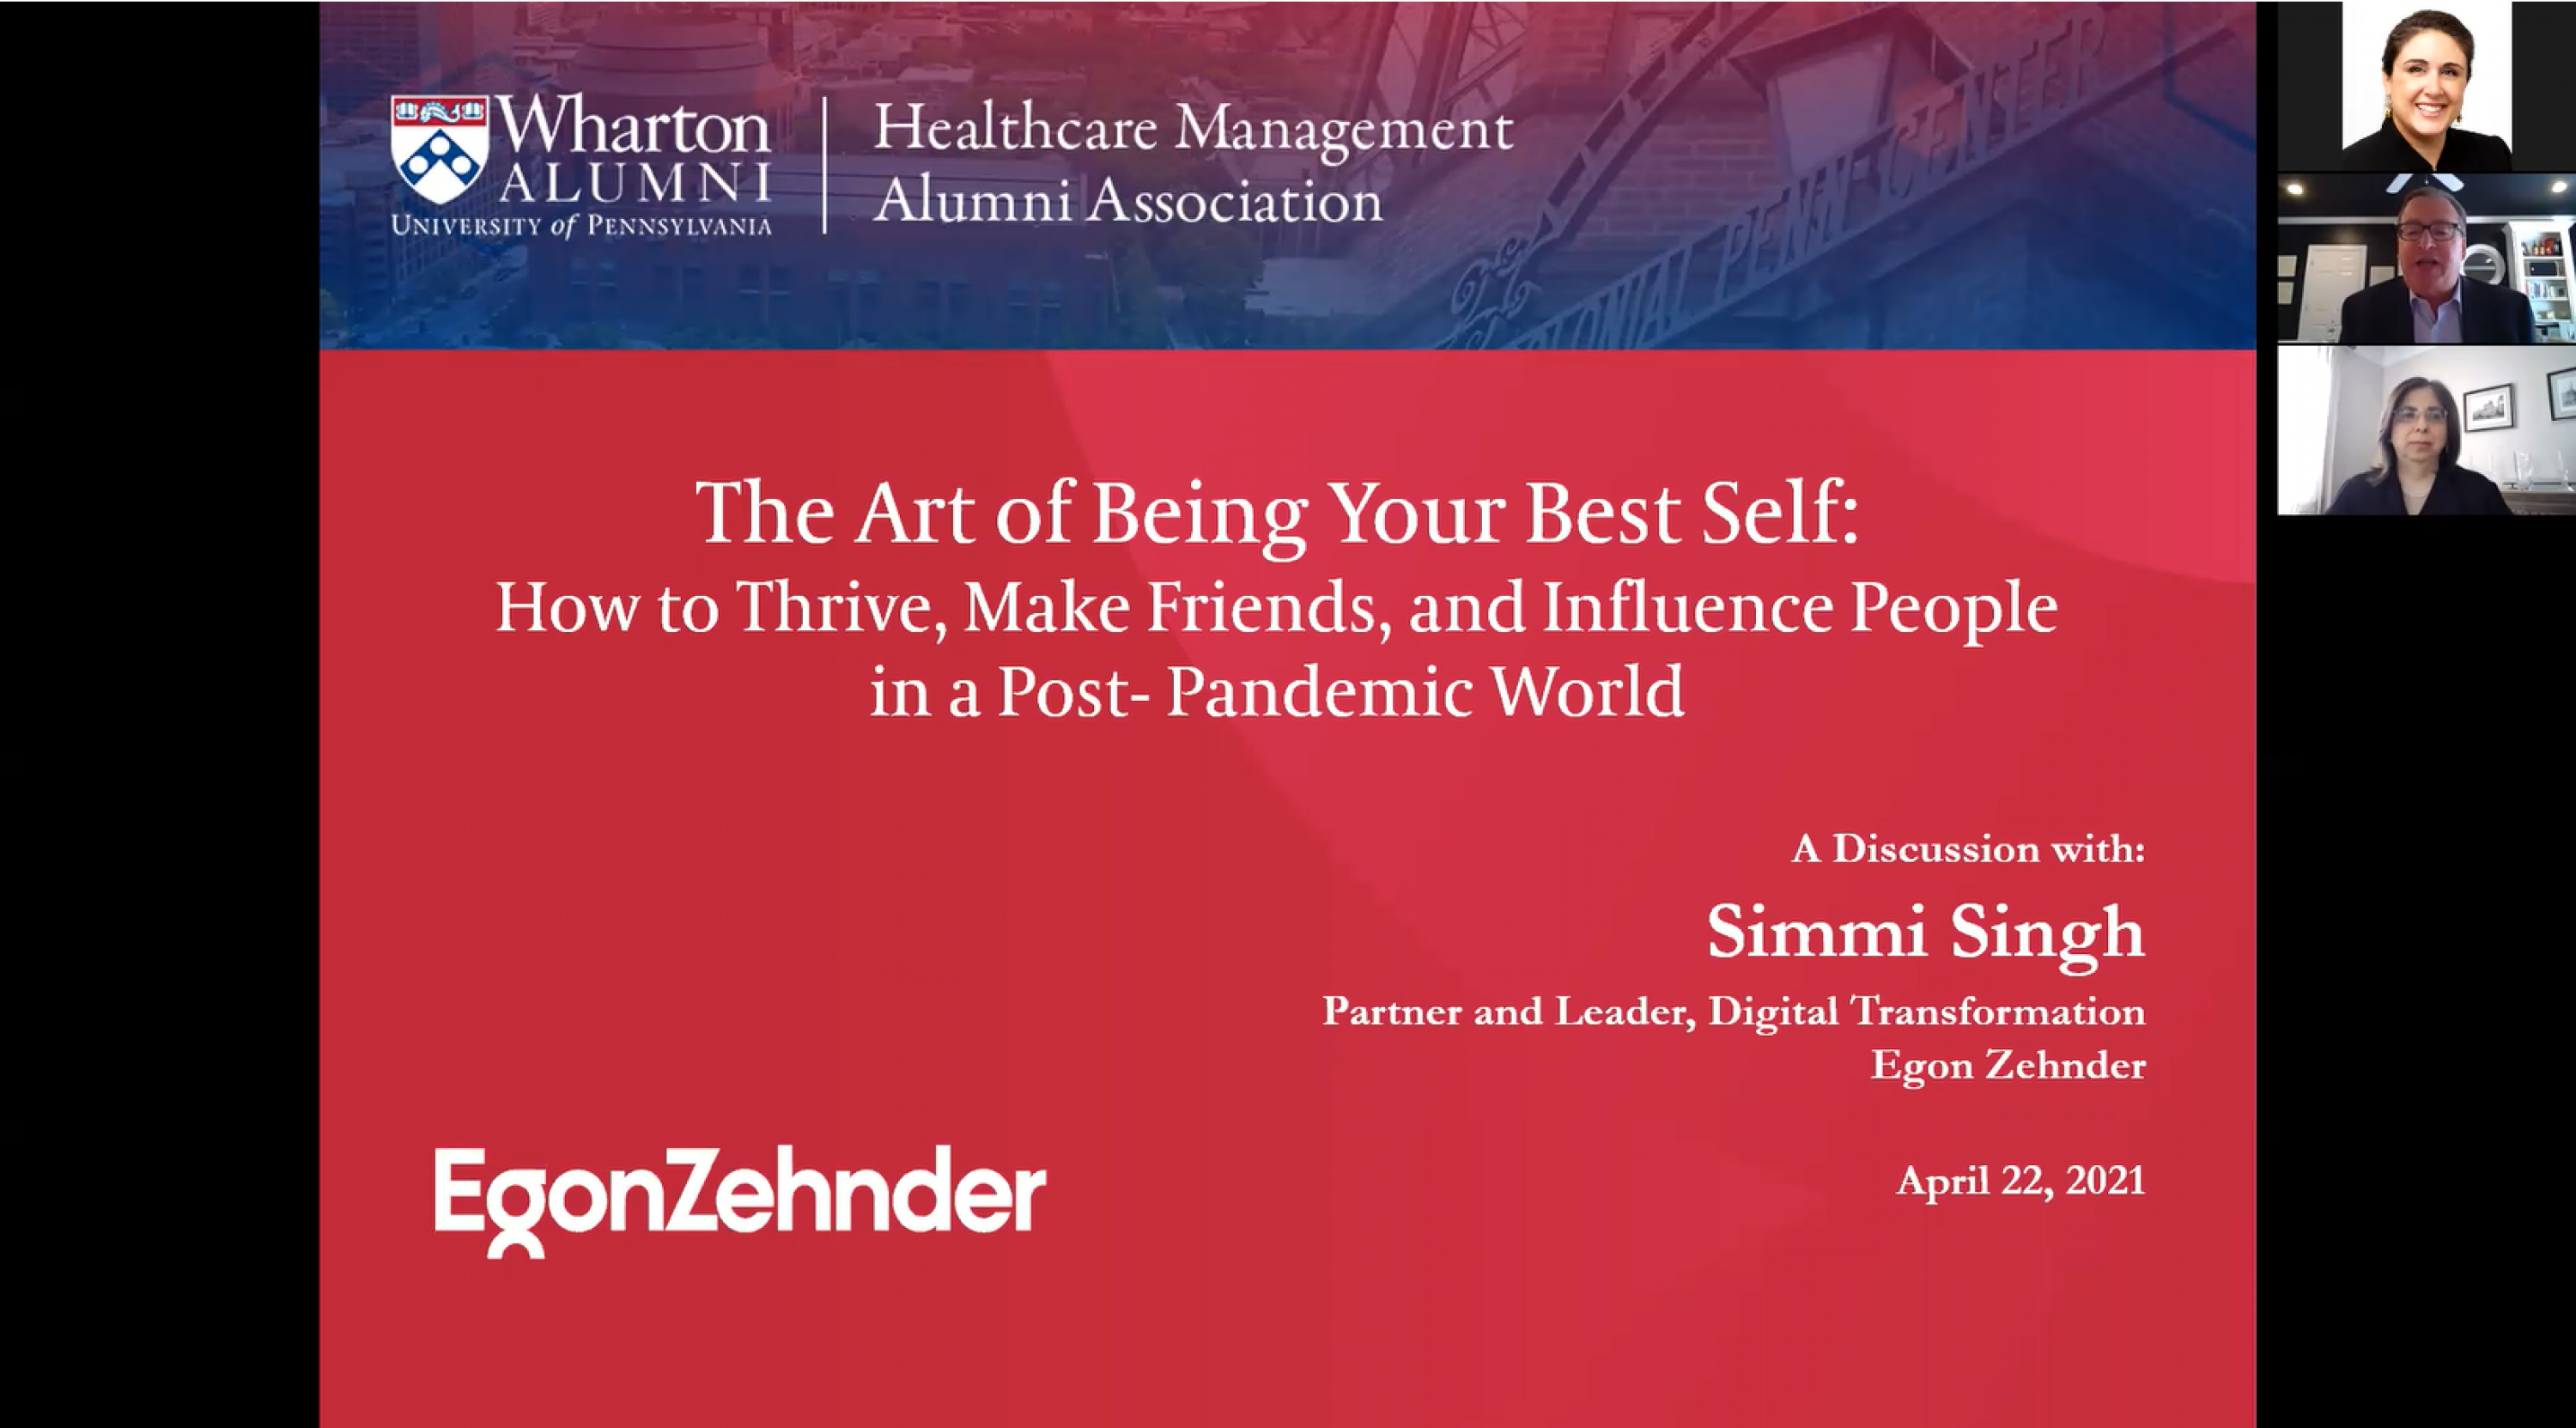 The Art of Being Your Best Self: How to Thrive, Make Friends, and Influence People in a Post-Pandemic World